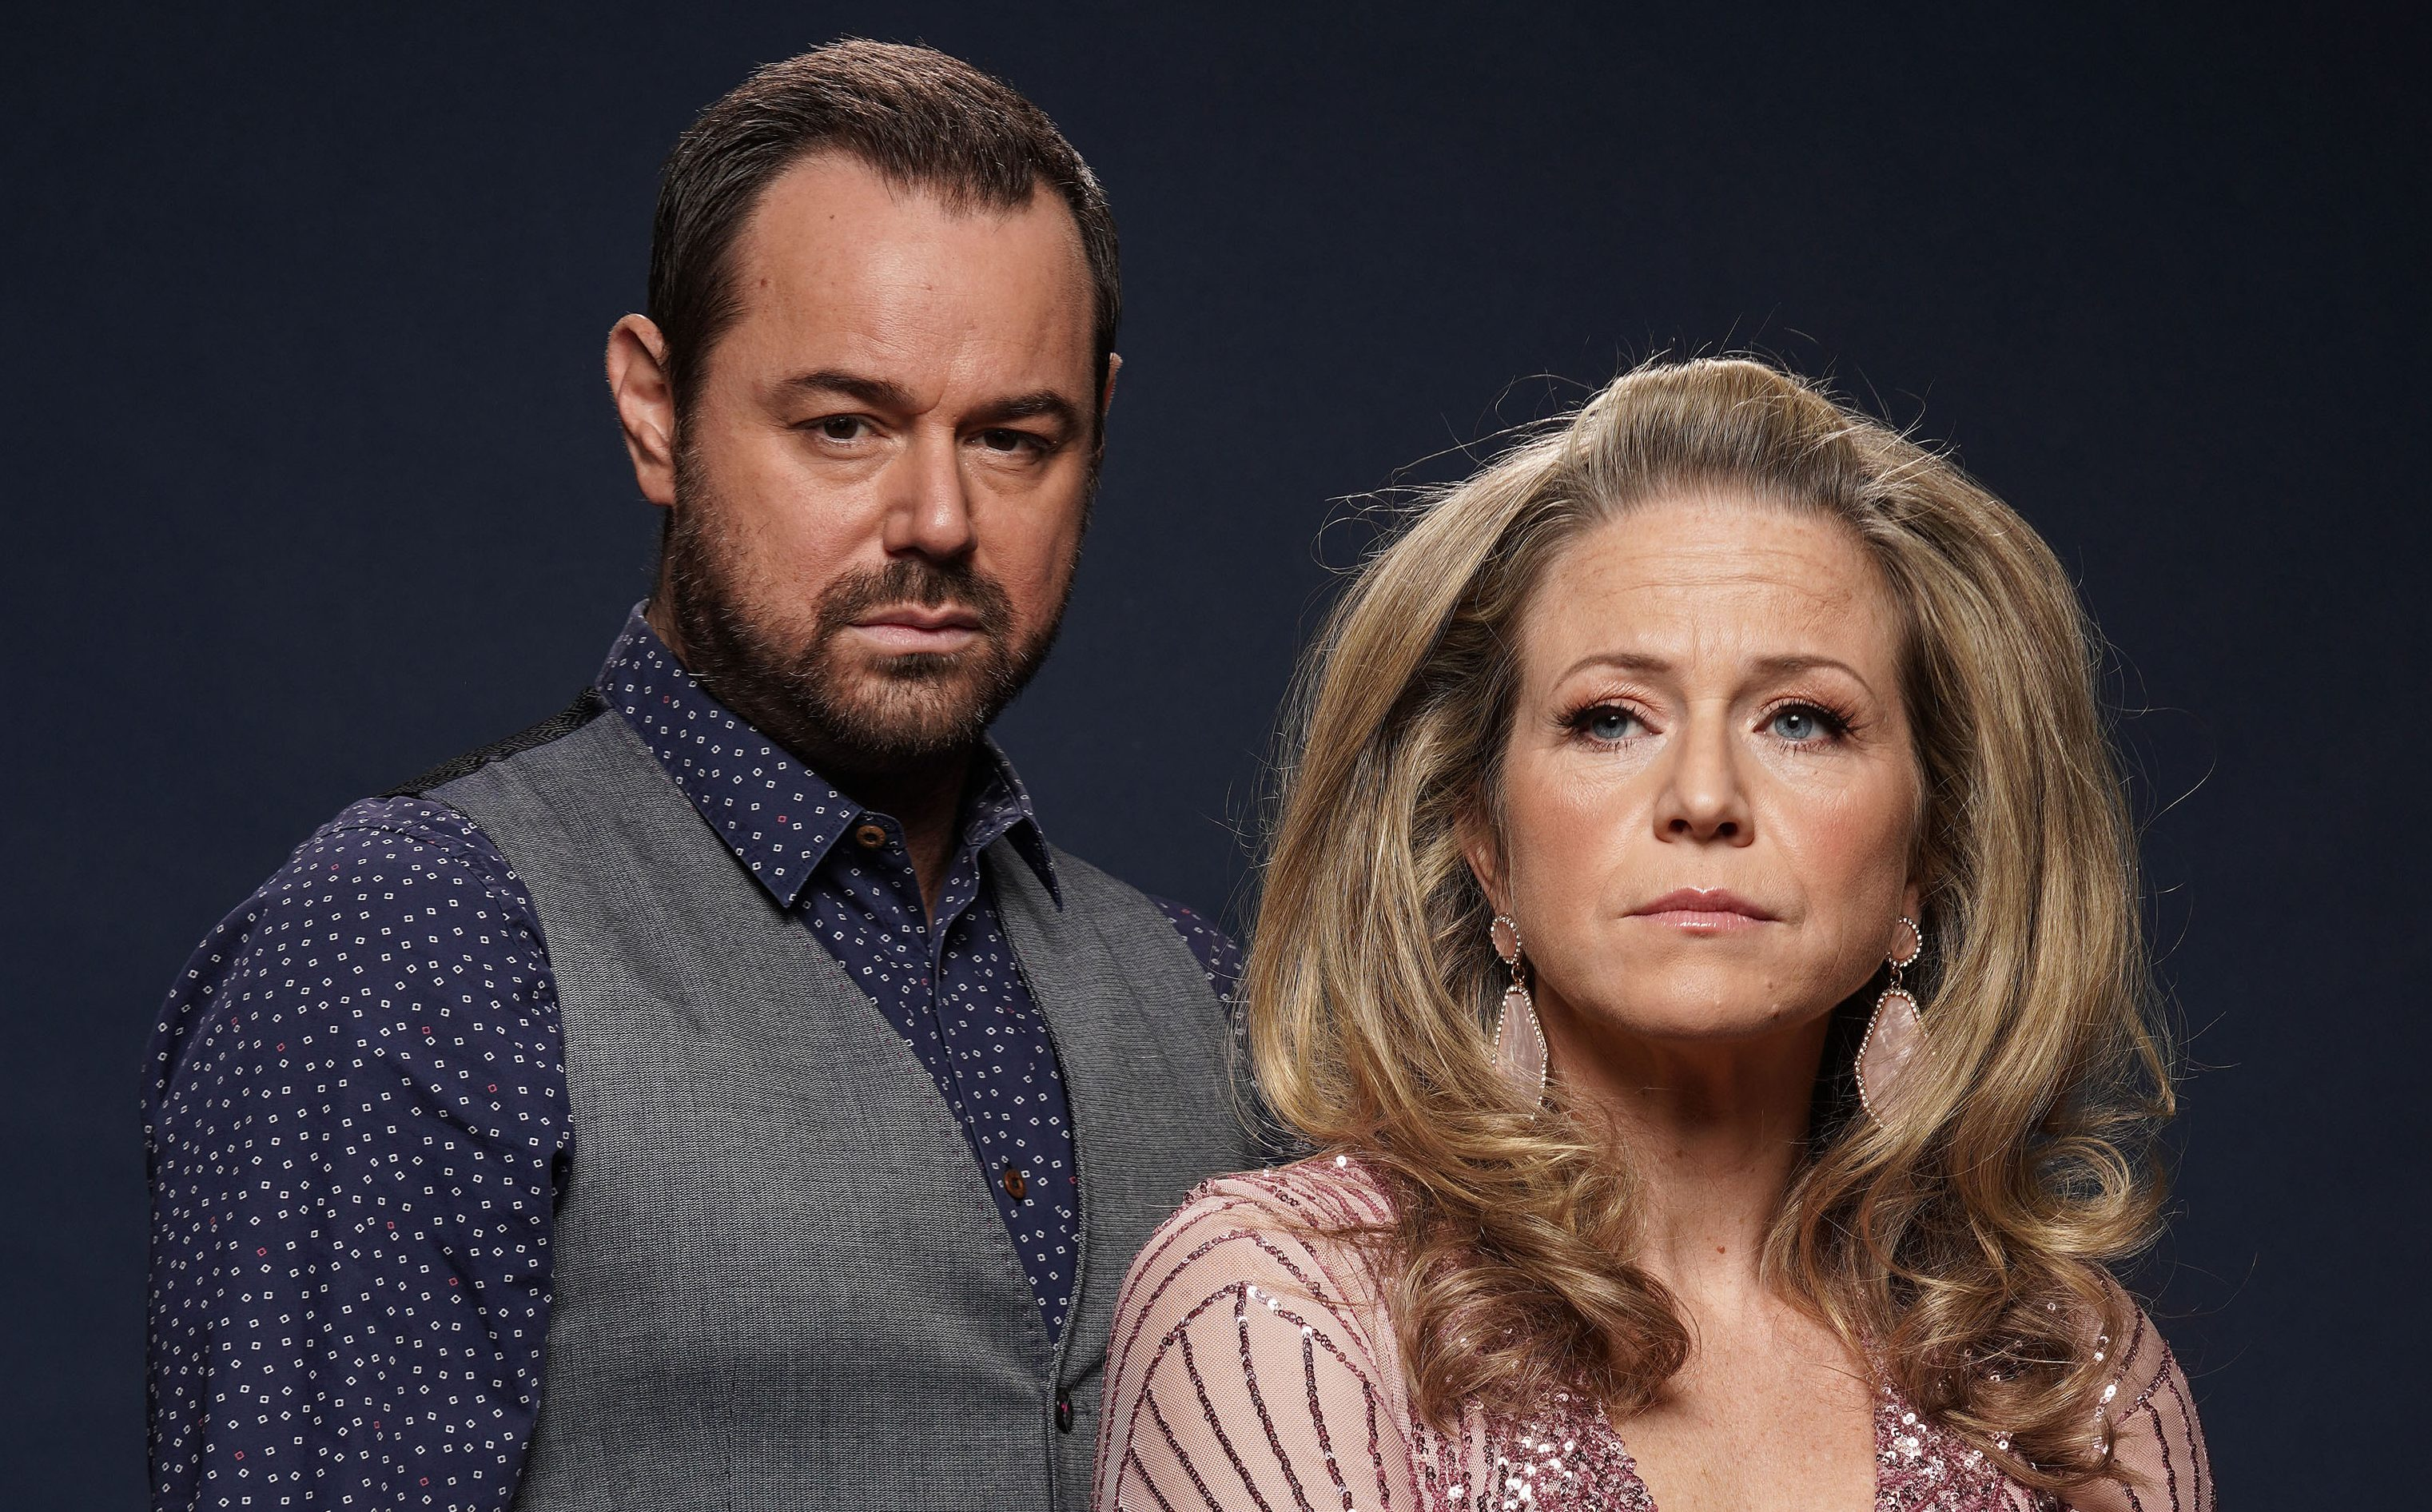 EastEnders boss confirms split for Mick and Linda Carter